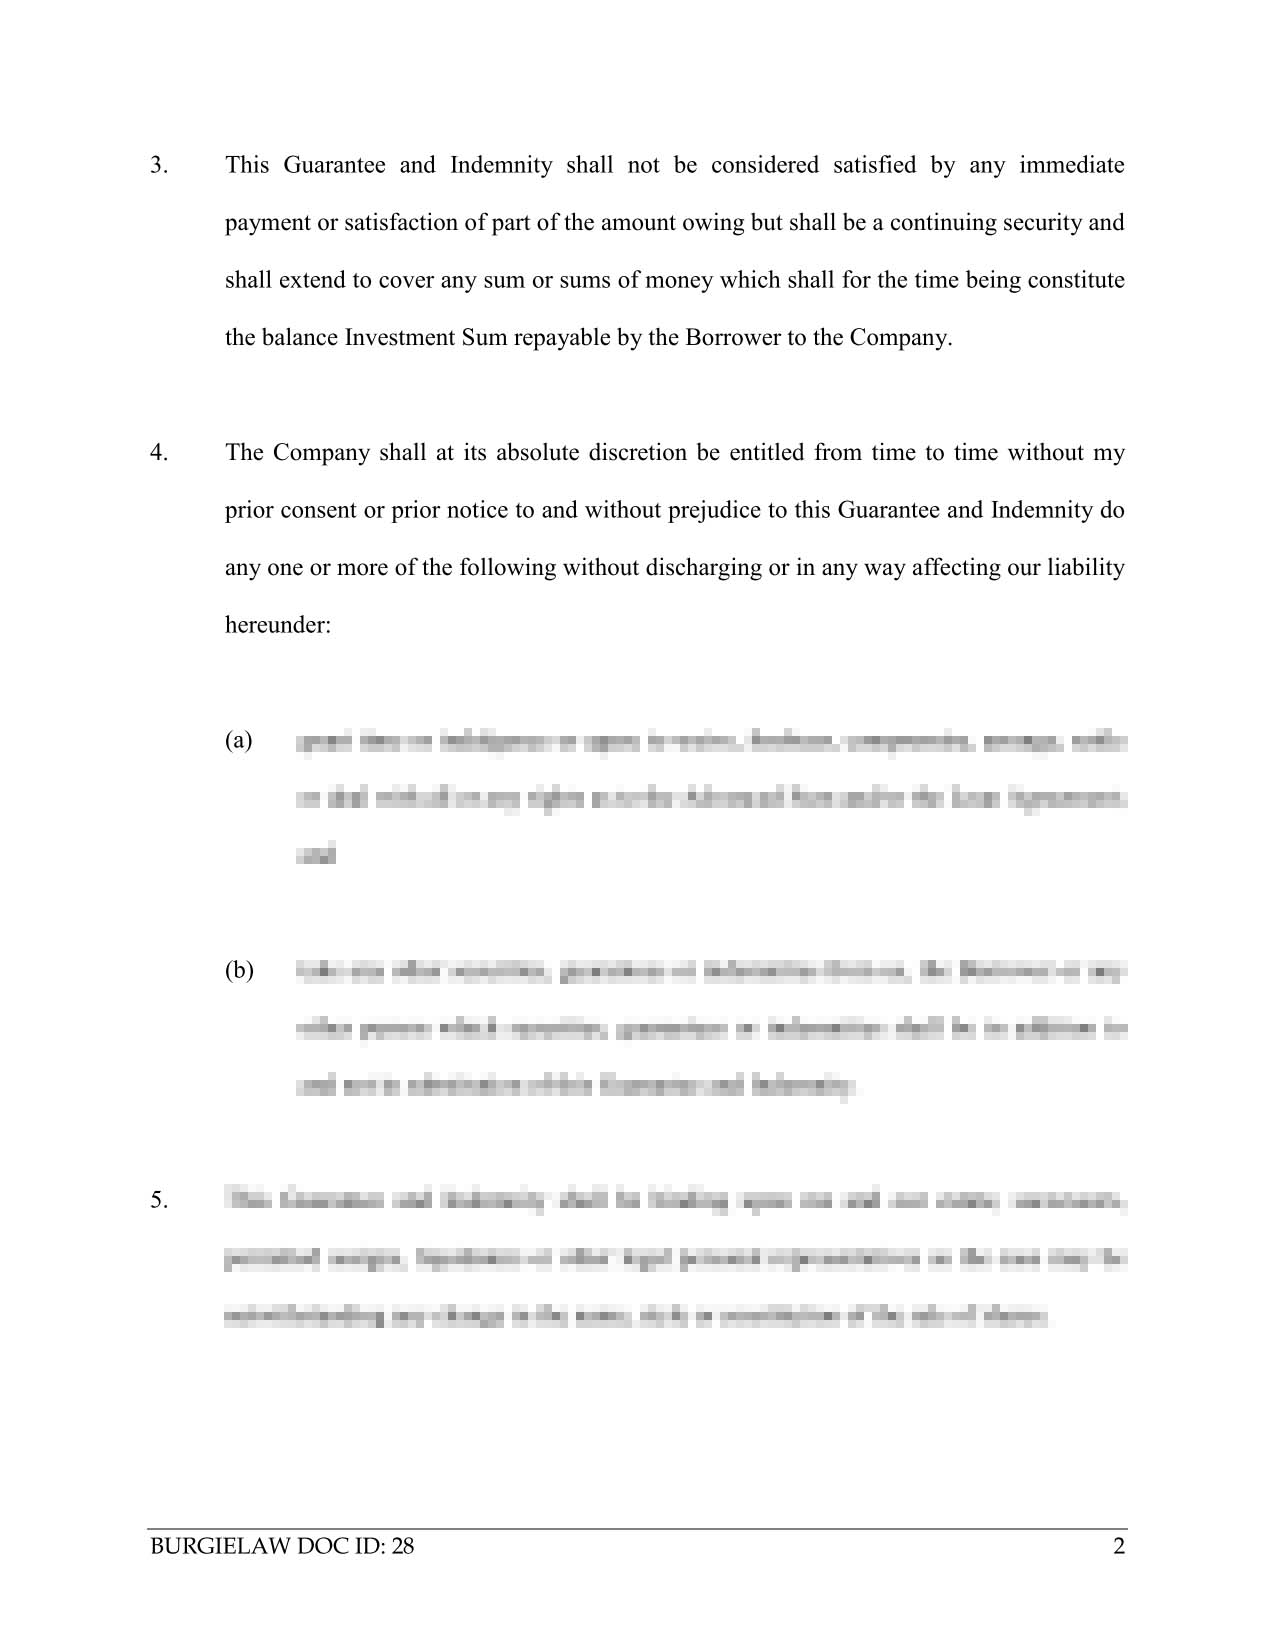 Letter Of Indemnity Template from www.burgielaw.com